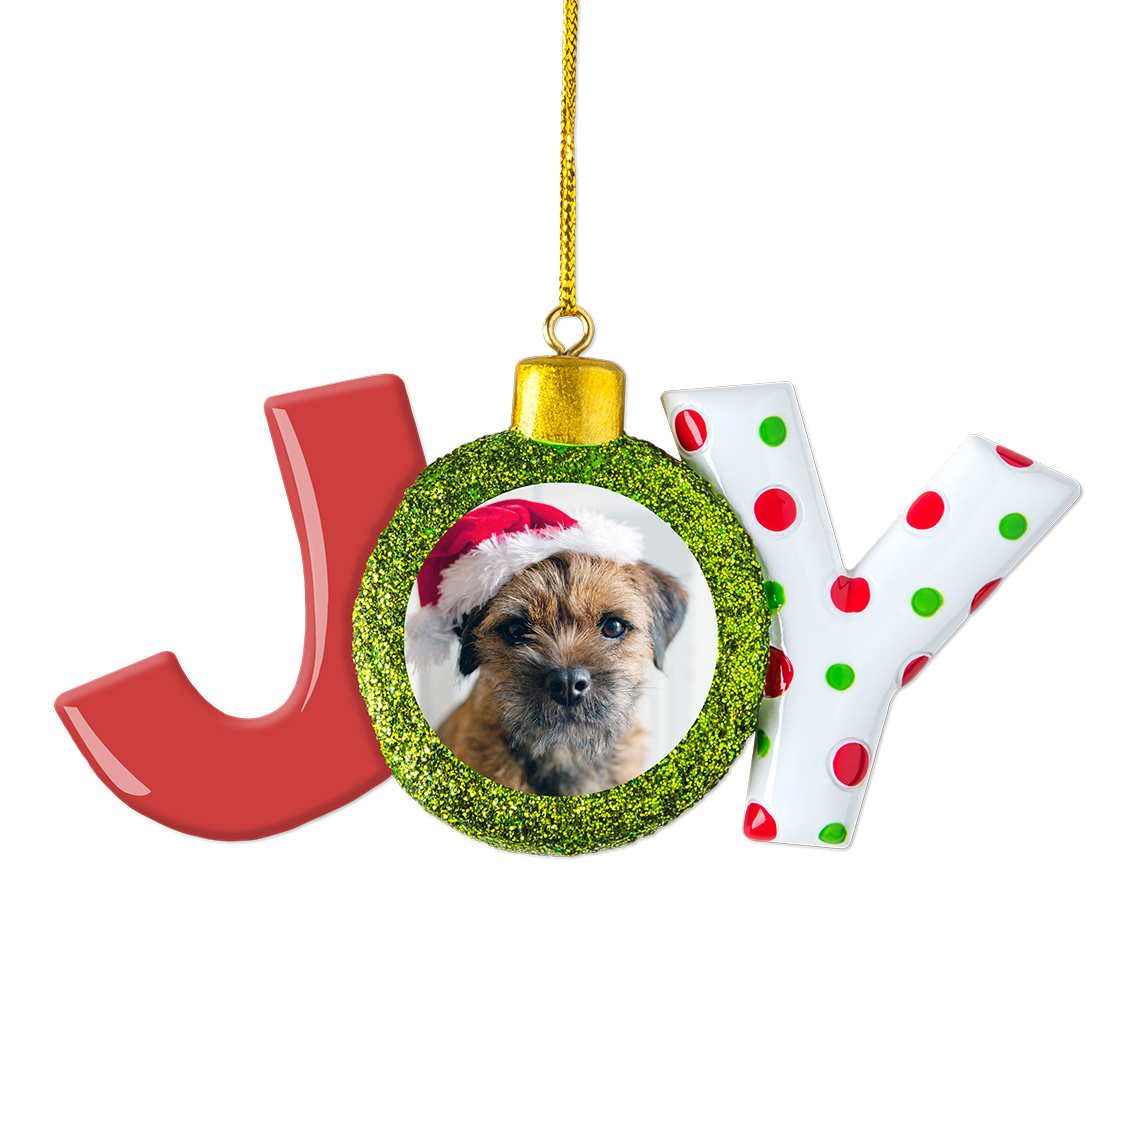 joy christmas ornament - Animal Christmas Decorations